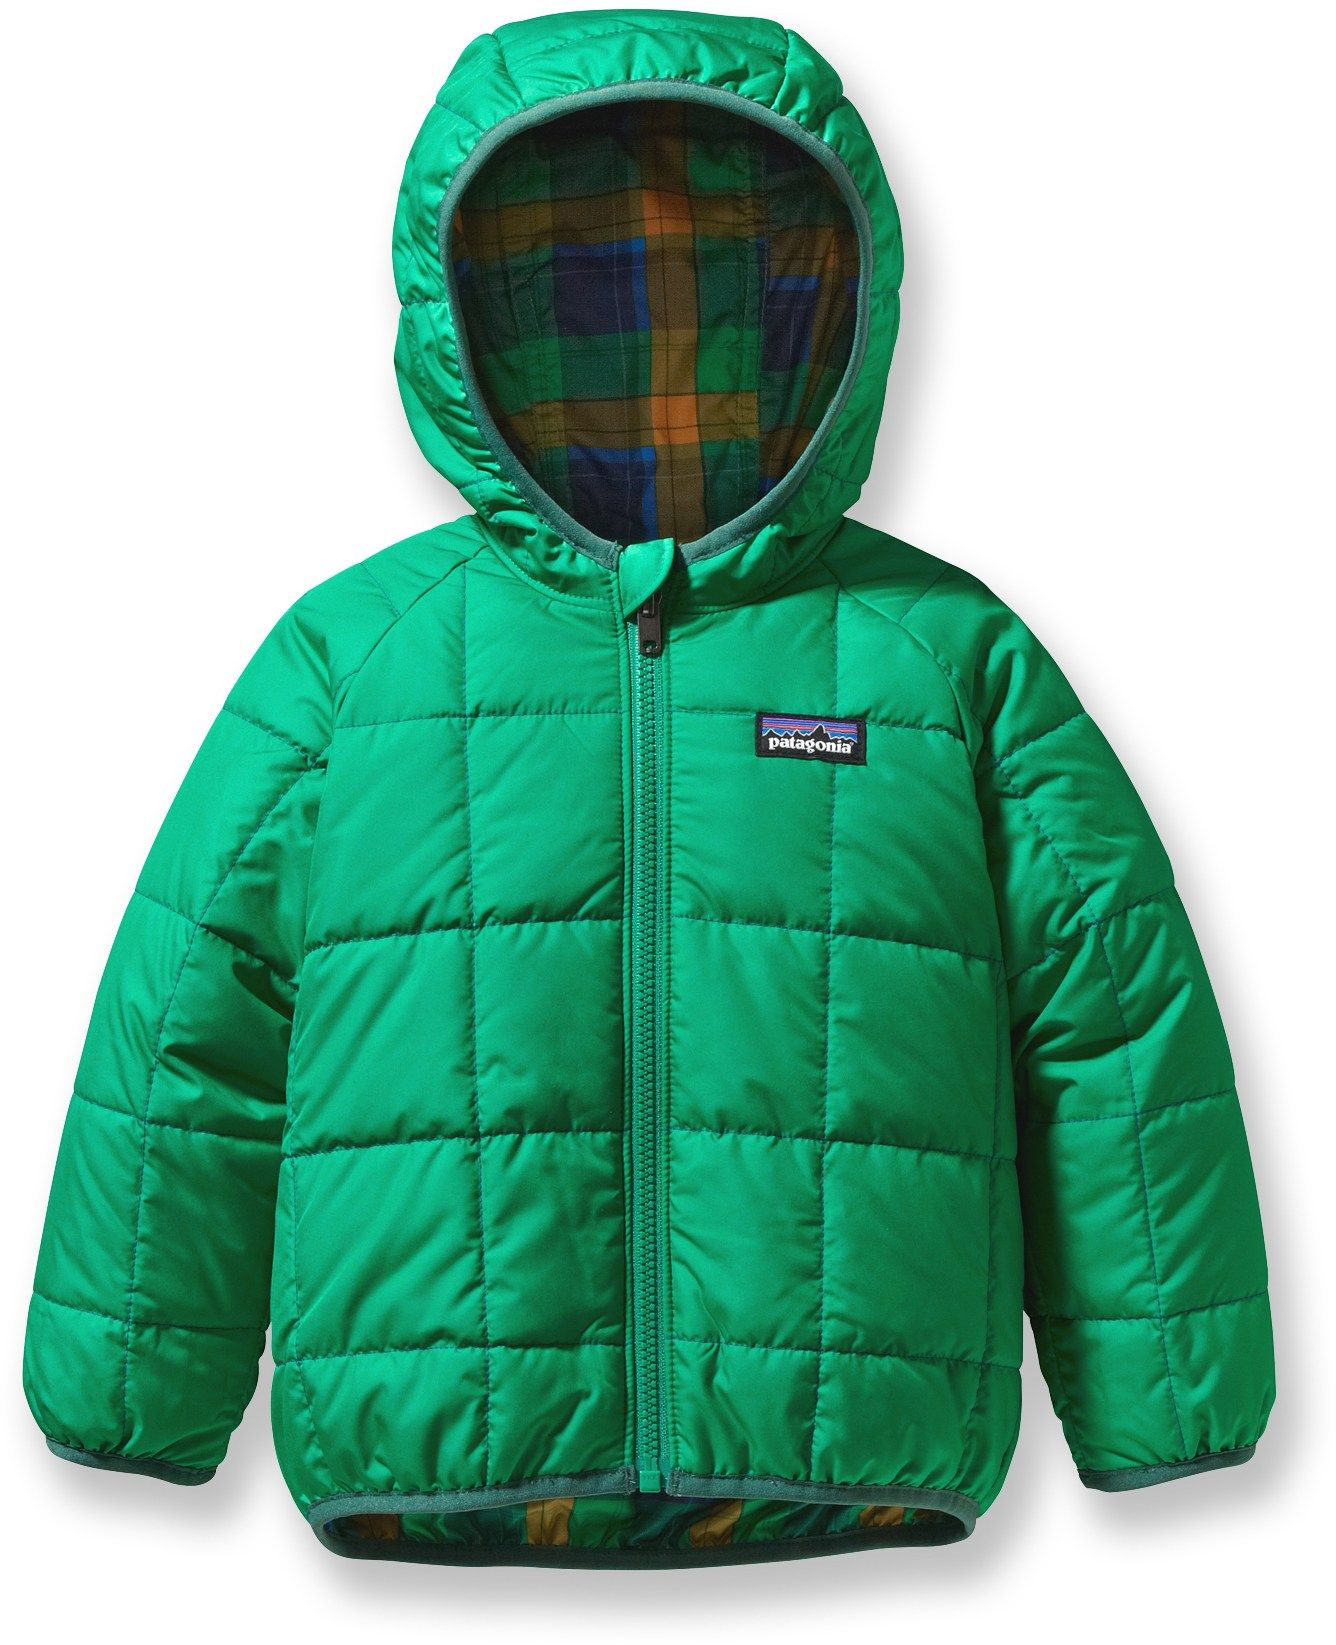 bf32d2664 Patagonia Baby Reversible Puff-Ball Insulated Jacket - Infant/Toddler Boys'  - Free Shipping at REI.com